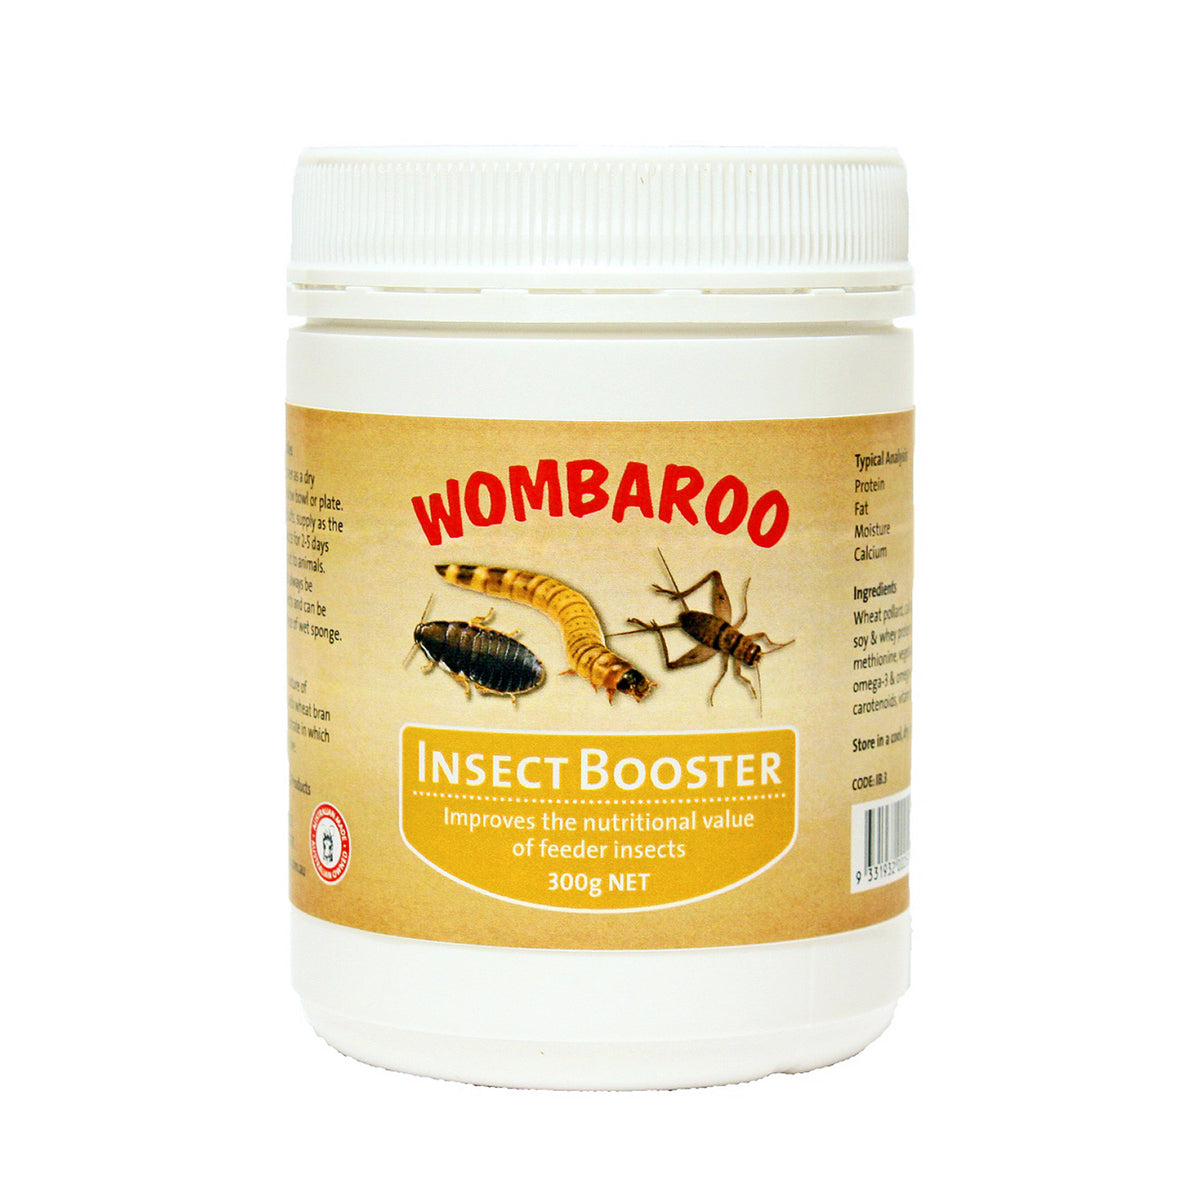 Wombaroo Insect Booster